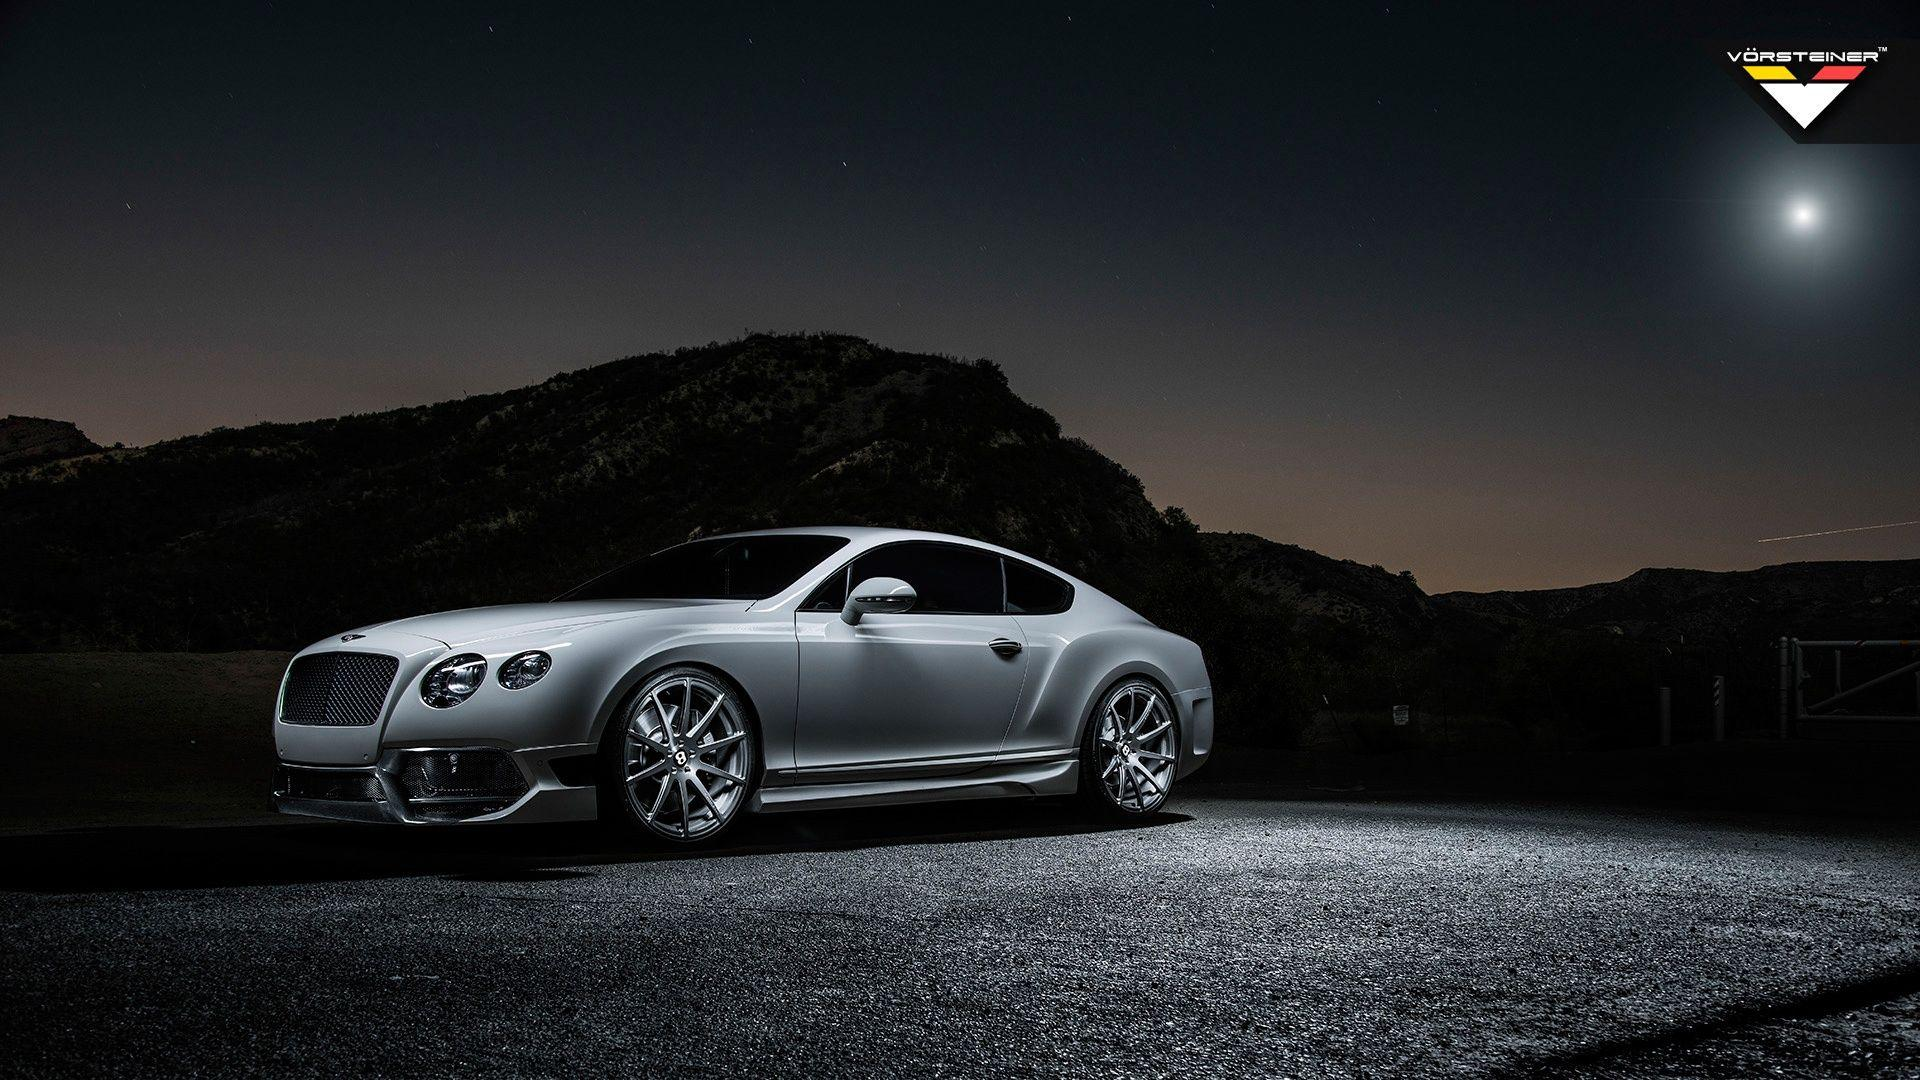 1920x1080 Bentley Continental GT Computer Wallpapers, REuuN ...